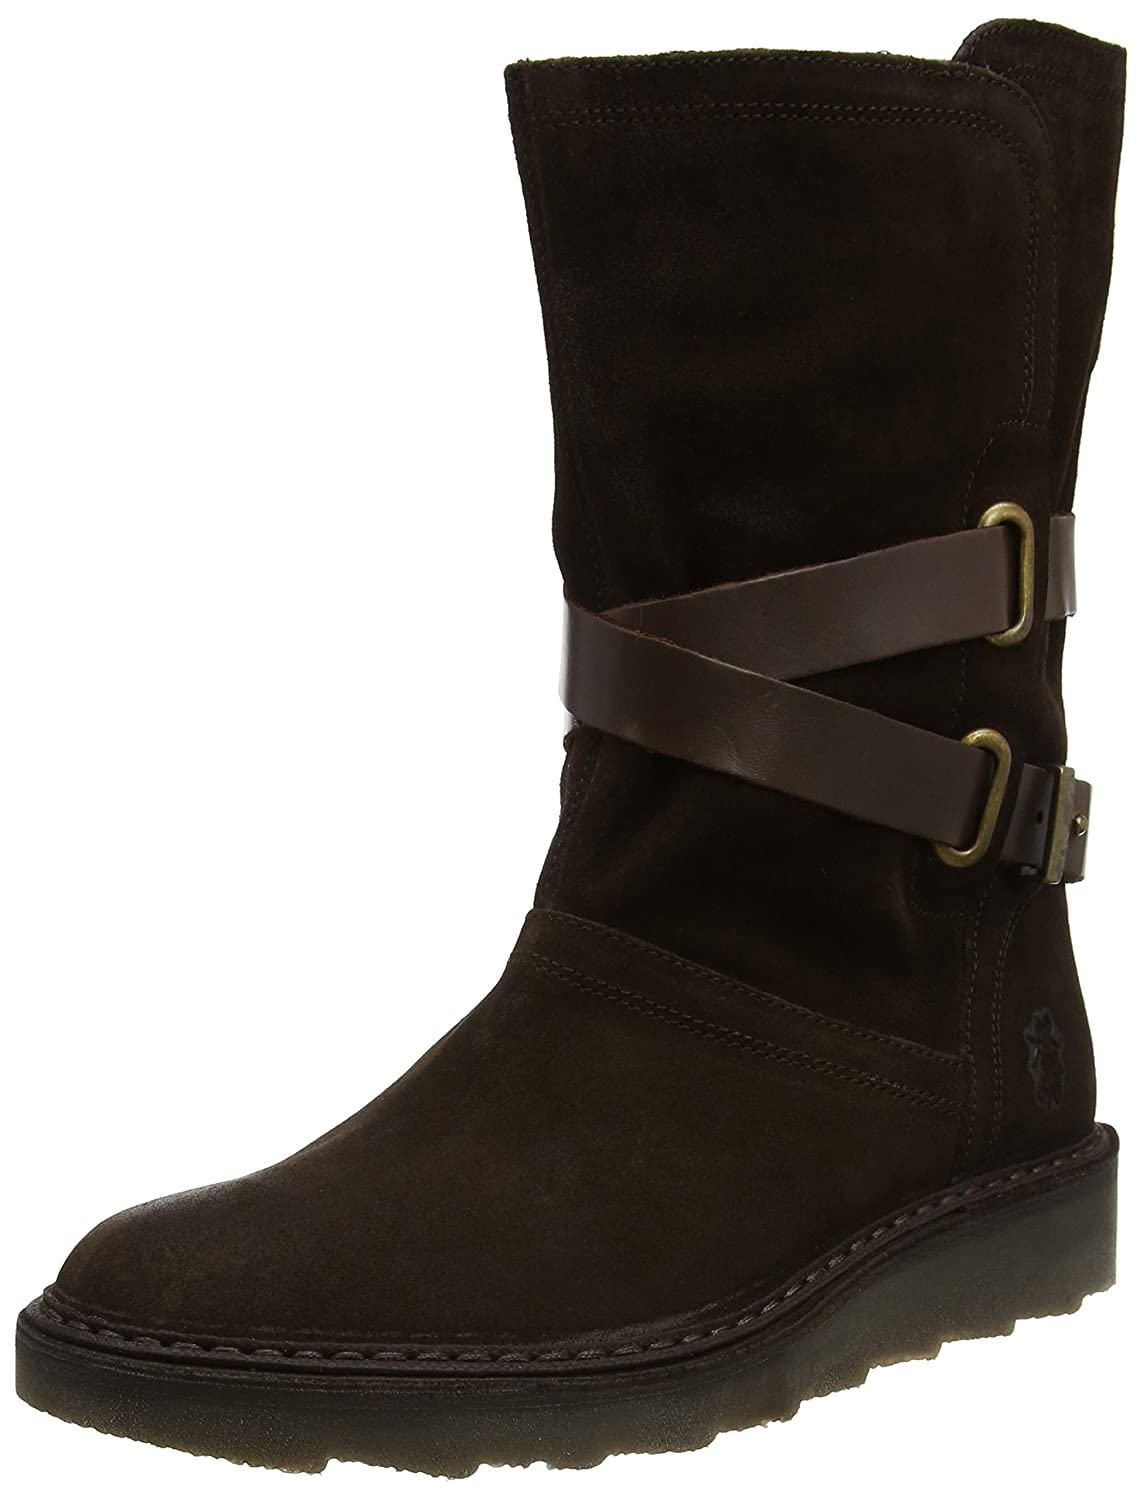 Fly London Army955fly, Botas para Mujer Marrón (Expresso/Dk Brown)